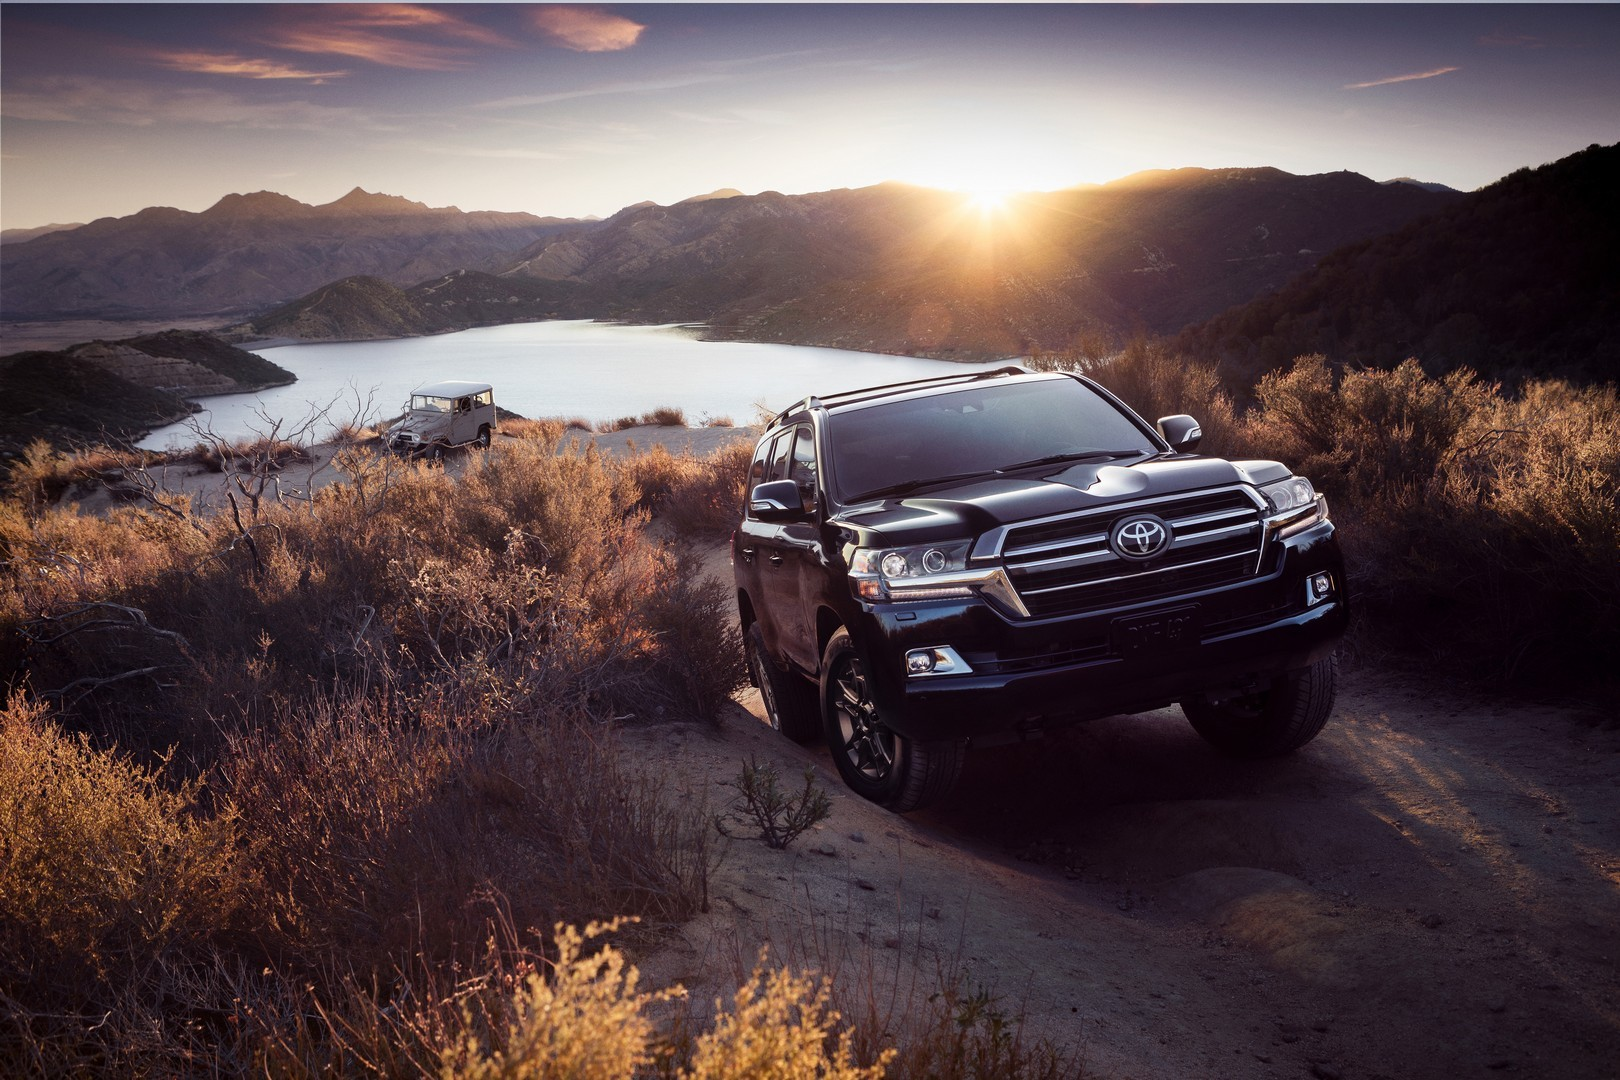 2021 Toyota Land Cruiser 200 Pricing Announced, Heritage ...